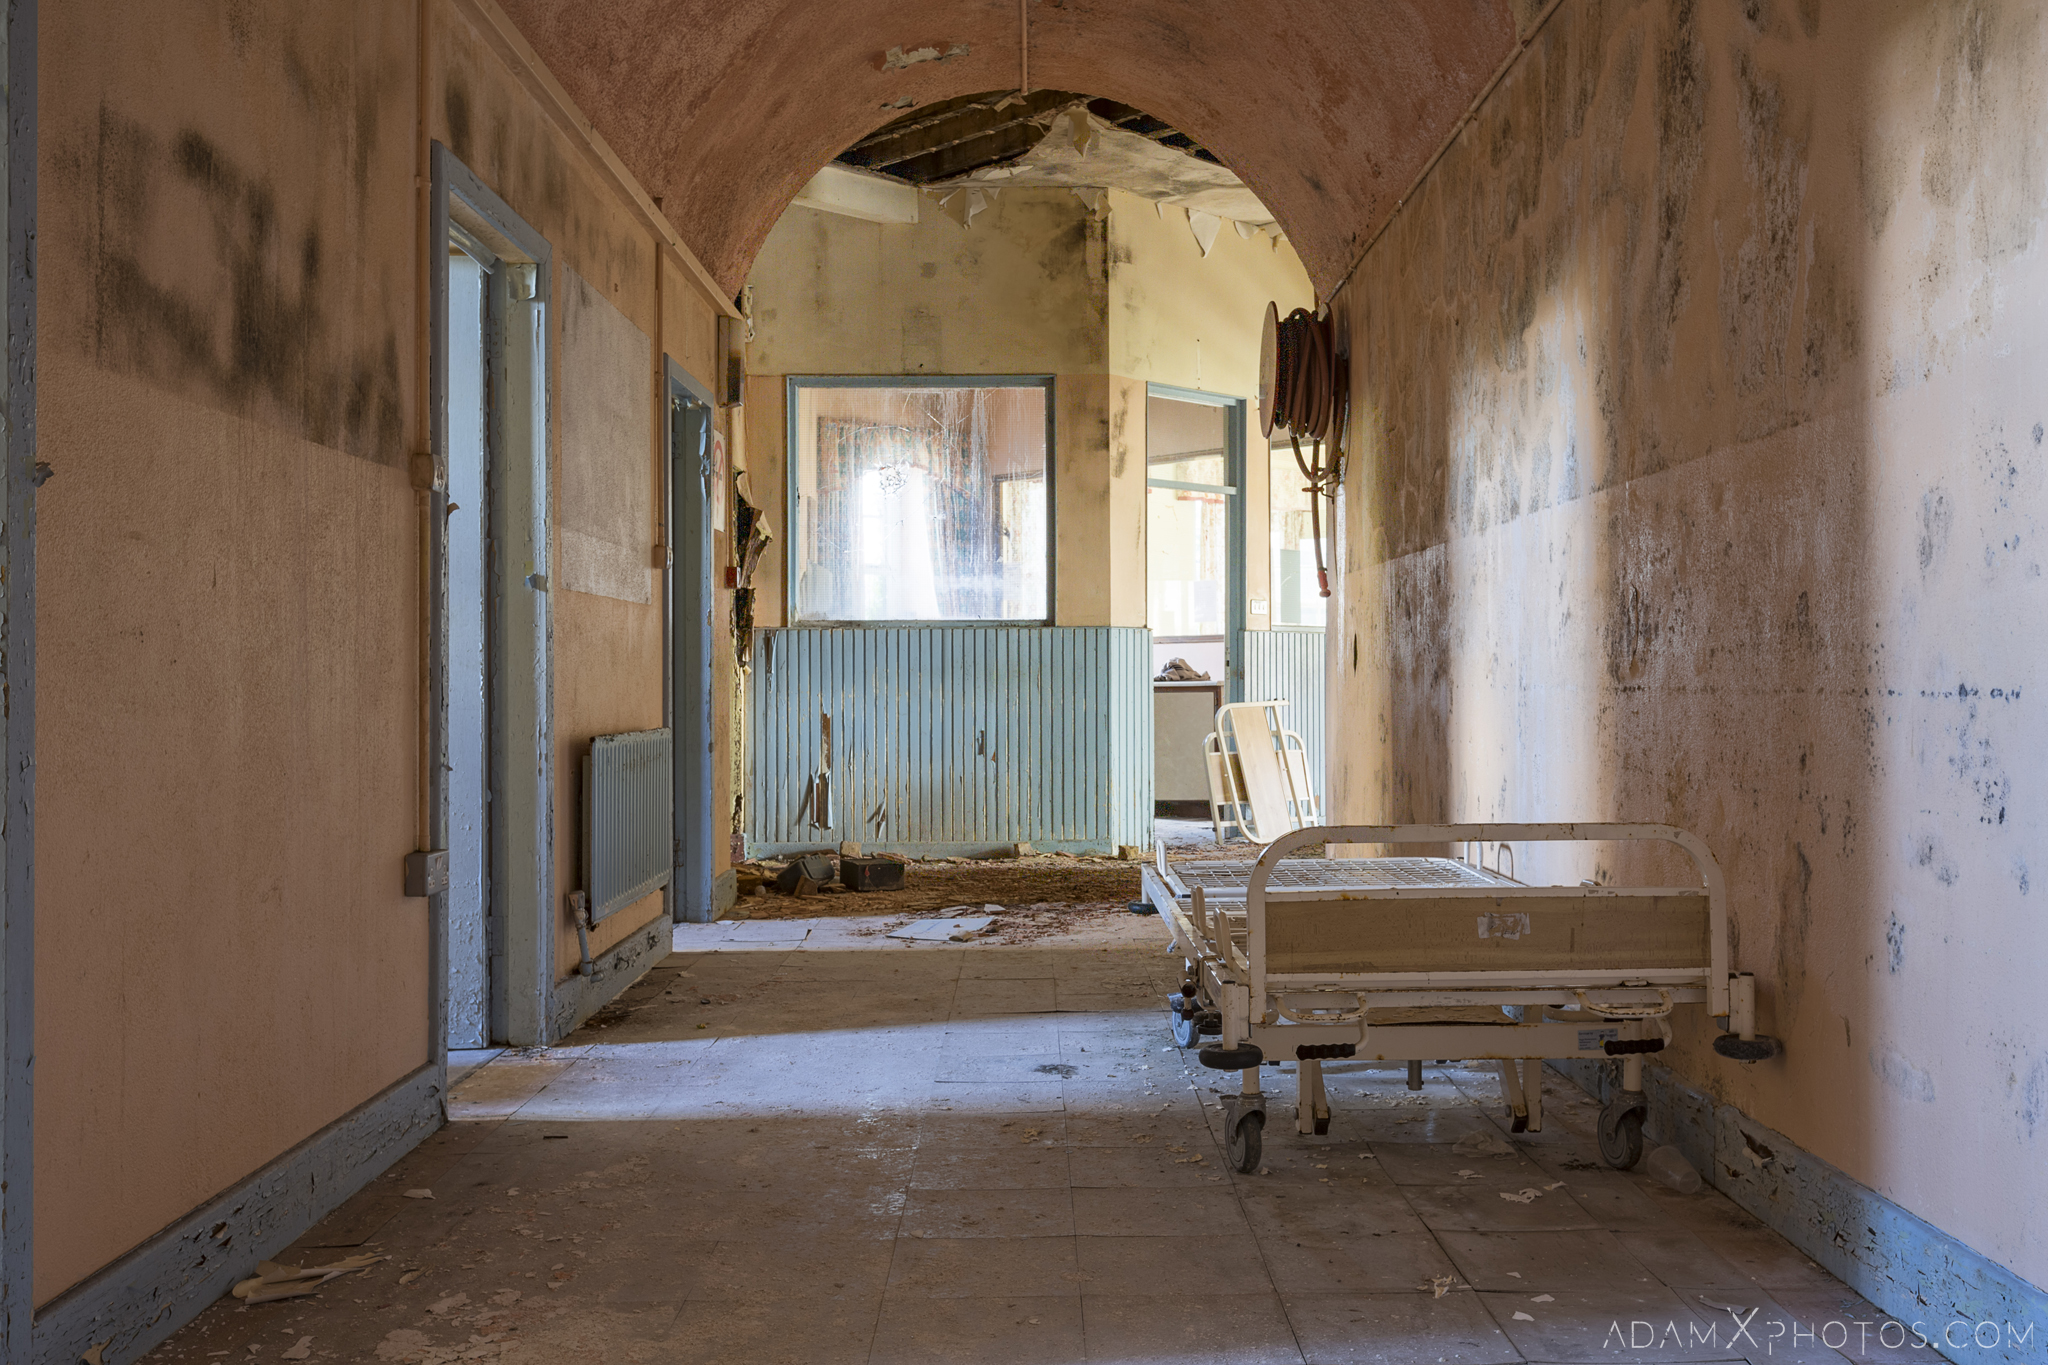 Corridor hospital bed Connacht District Lunatic Asylum St Brigid's Hospital Adam X Urbex Urban Exploration Ireland Ballinasloe Access 2017 Abandoned decay lost forgotten derelict location creepy haunting eerie